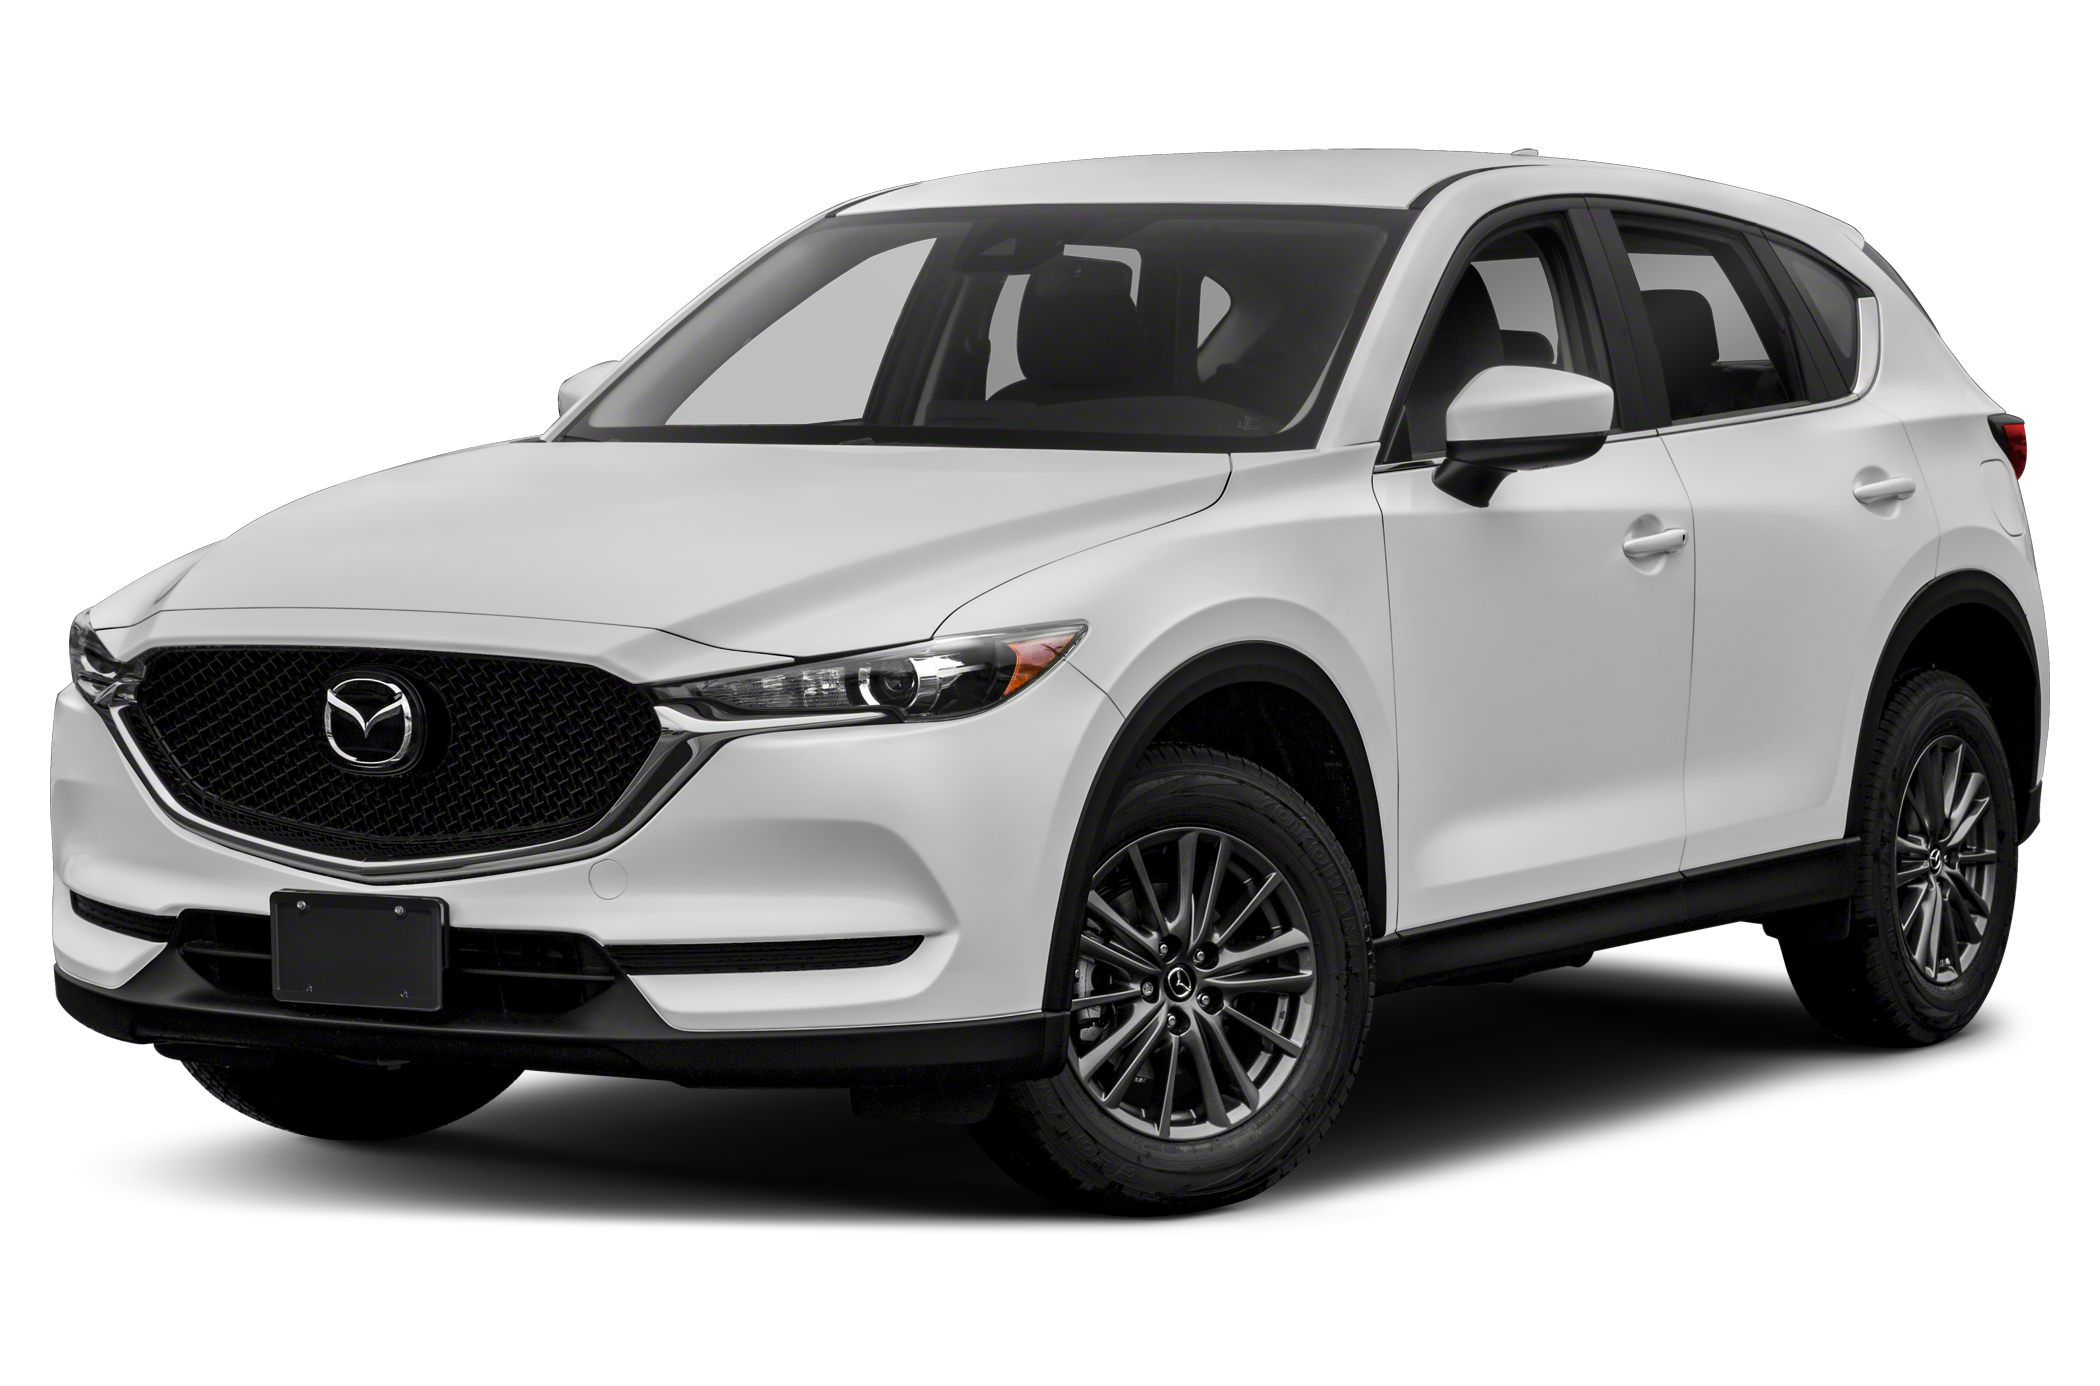 2018 Mazda Cx 5 Styles Features Highlights